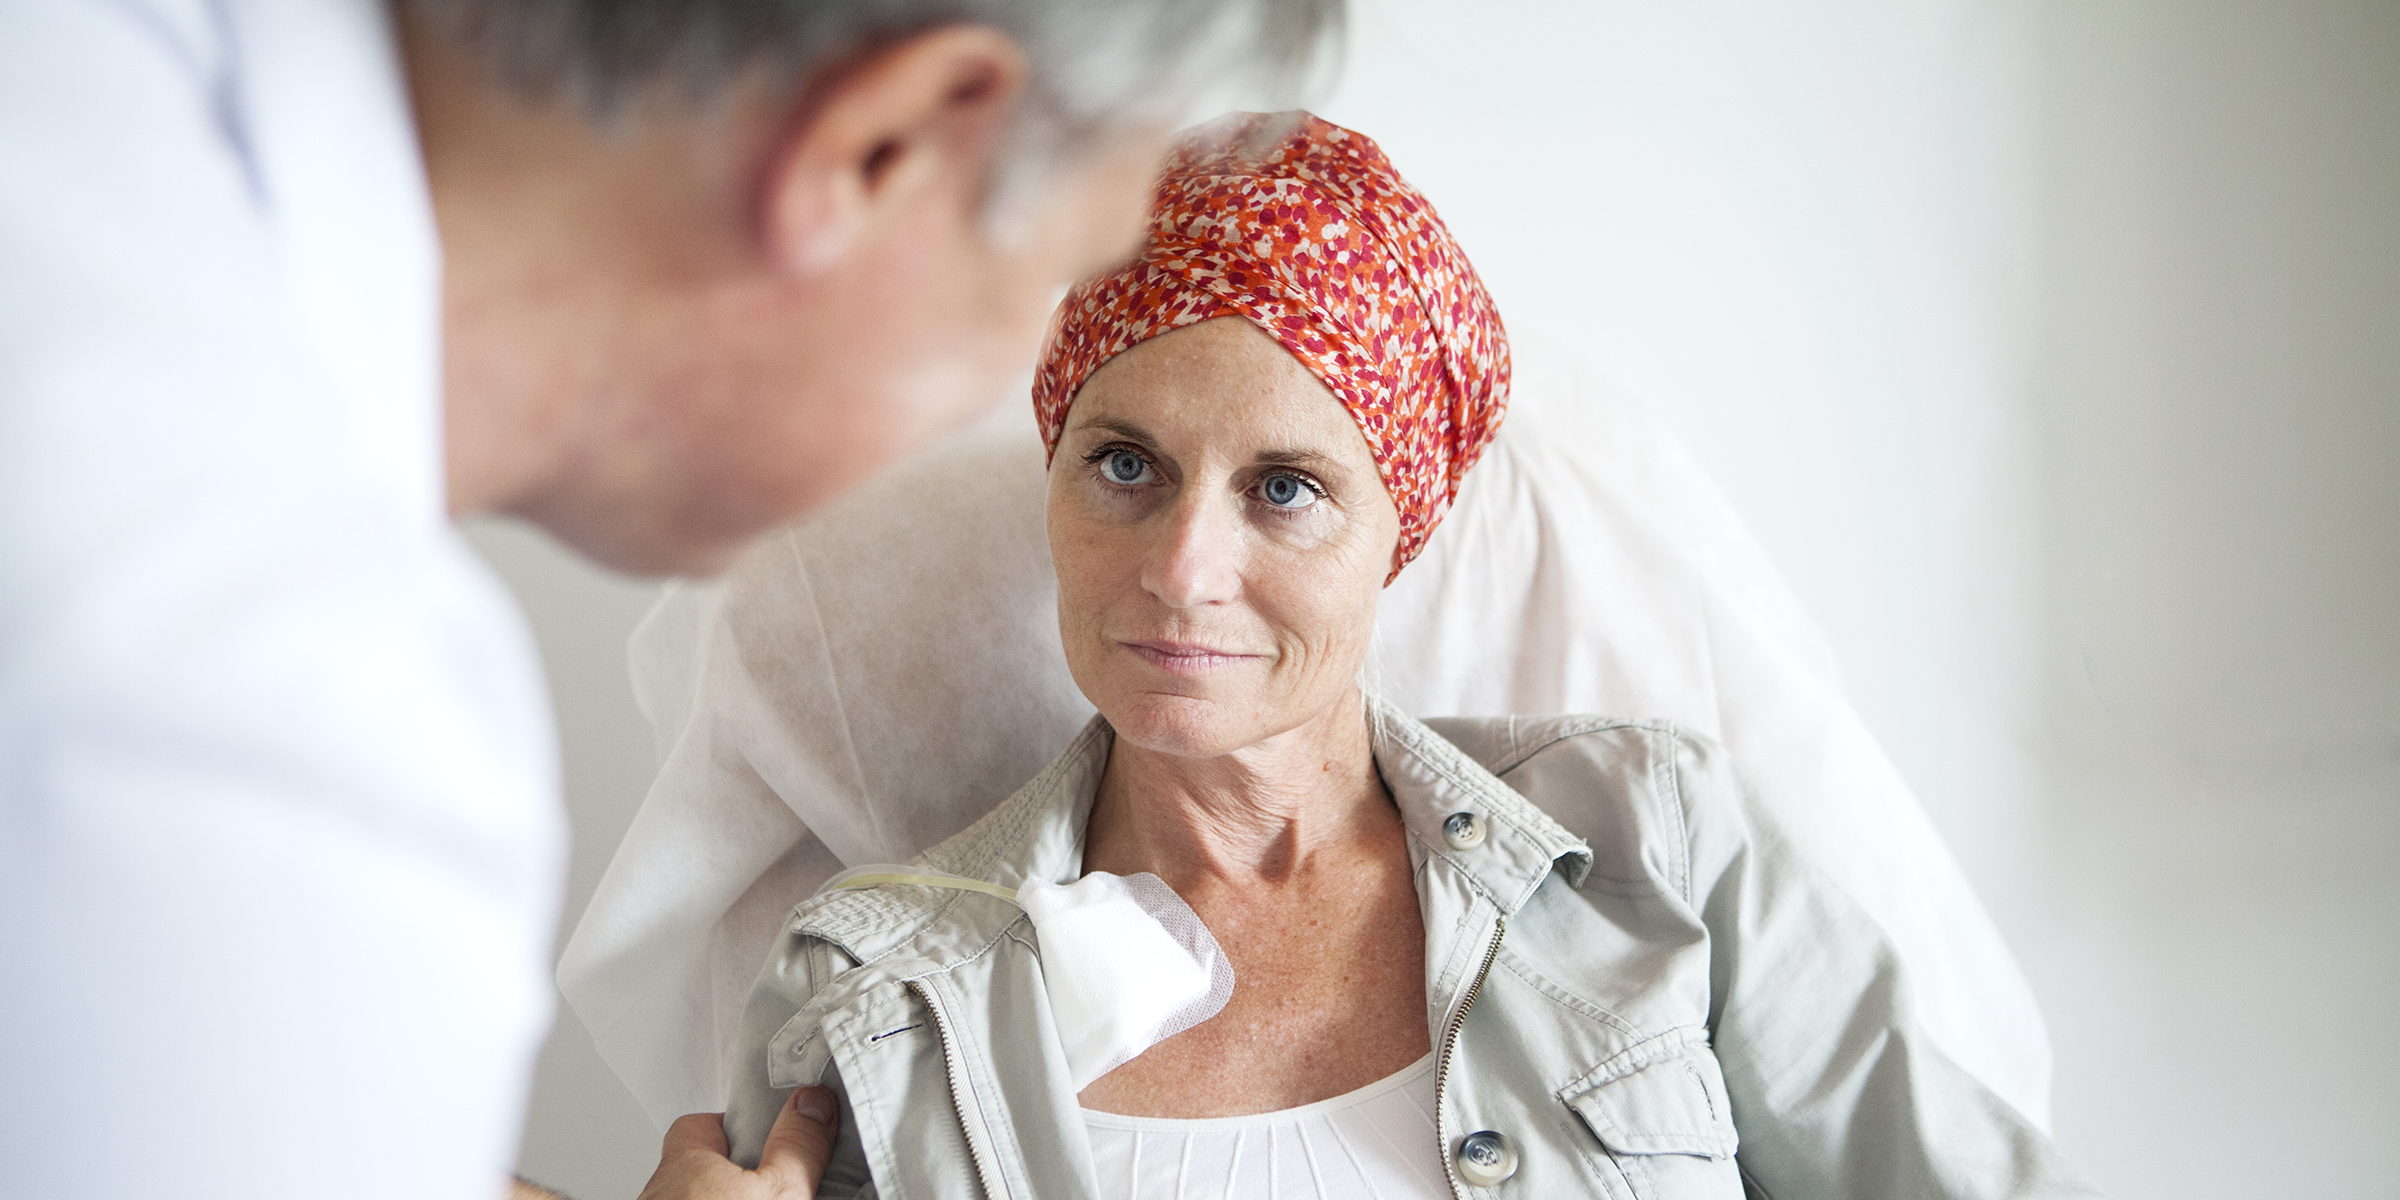 Coronavirus and cancer: Risk for survivors and immunocompromised patients